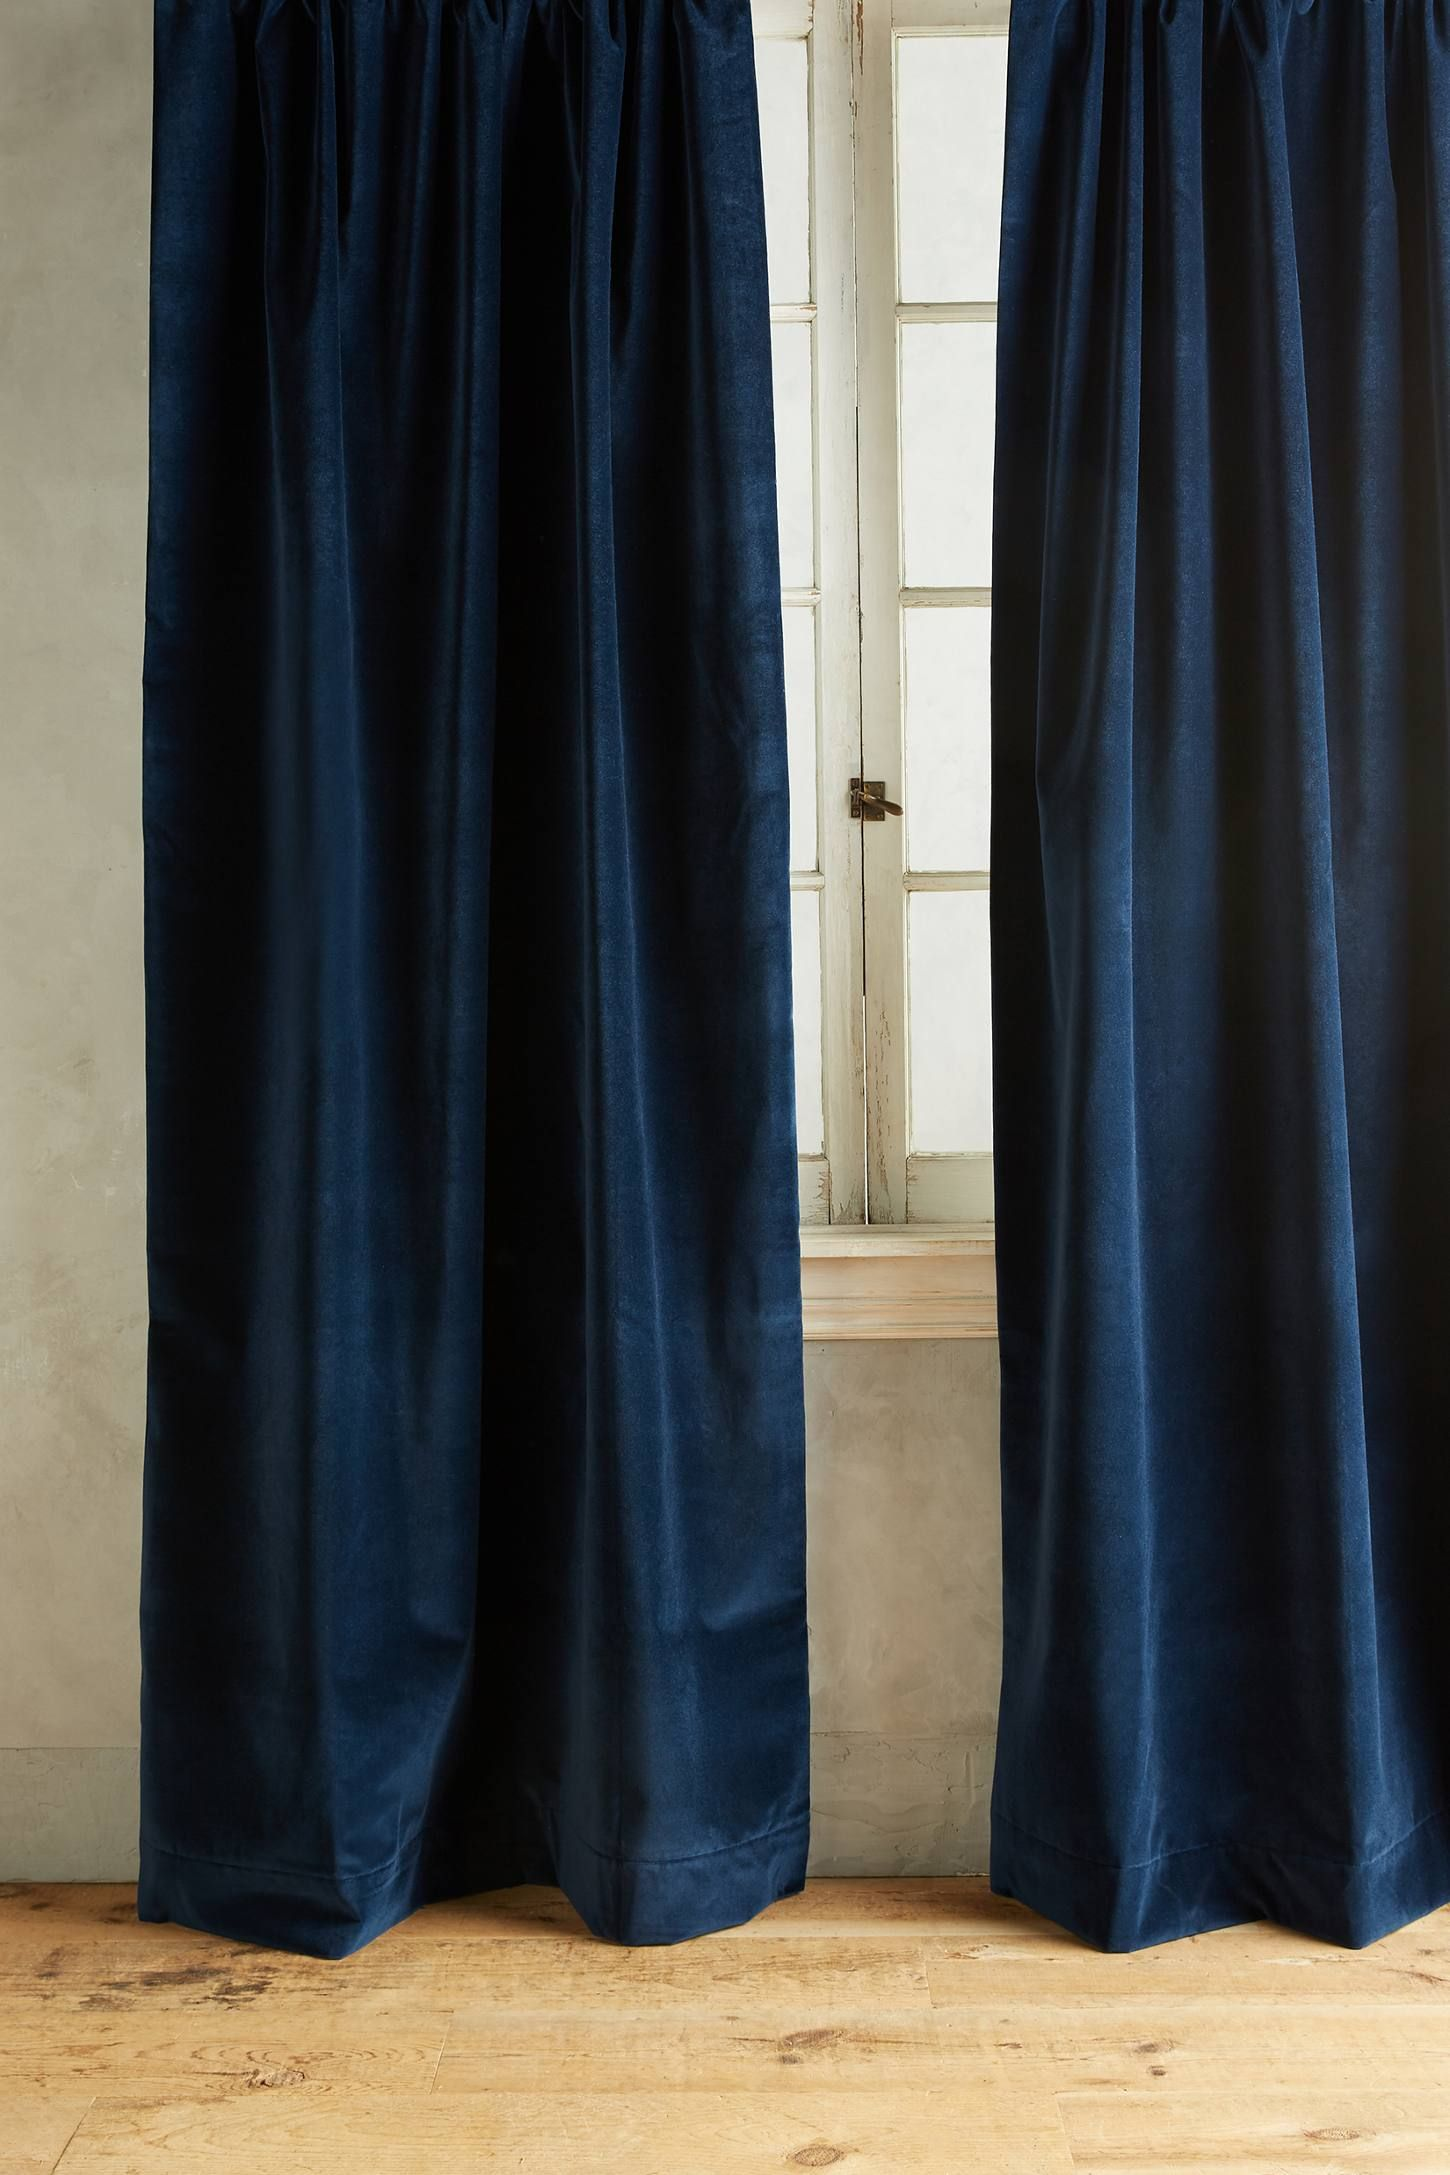 Matte Velvet Curtain Velvet Curtains Curtains Curtains With Blinds